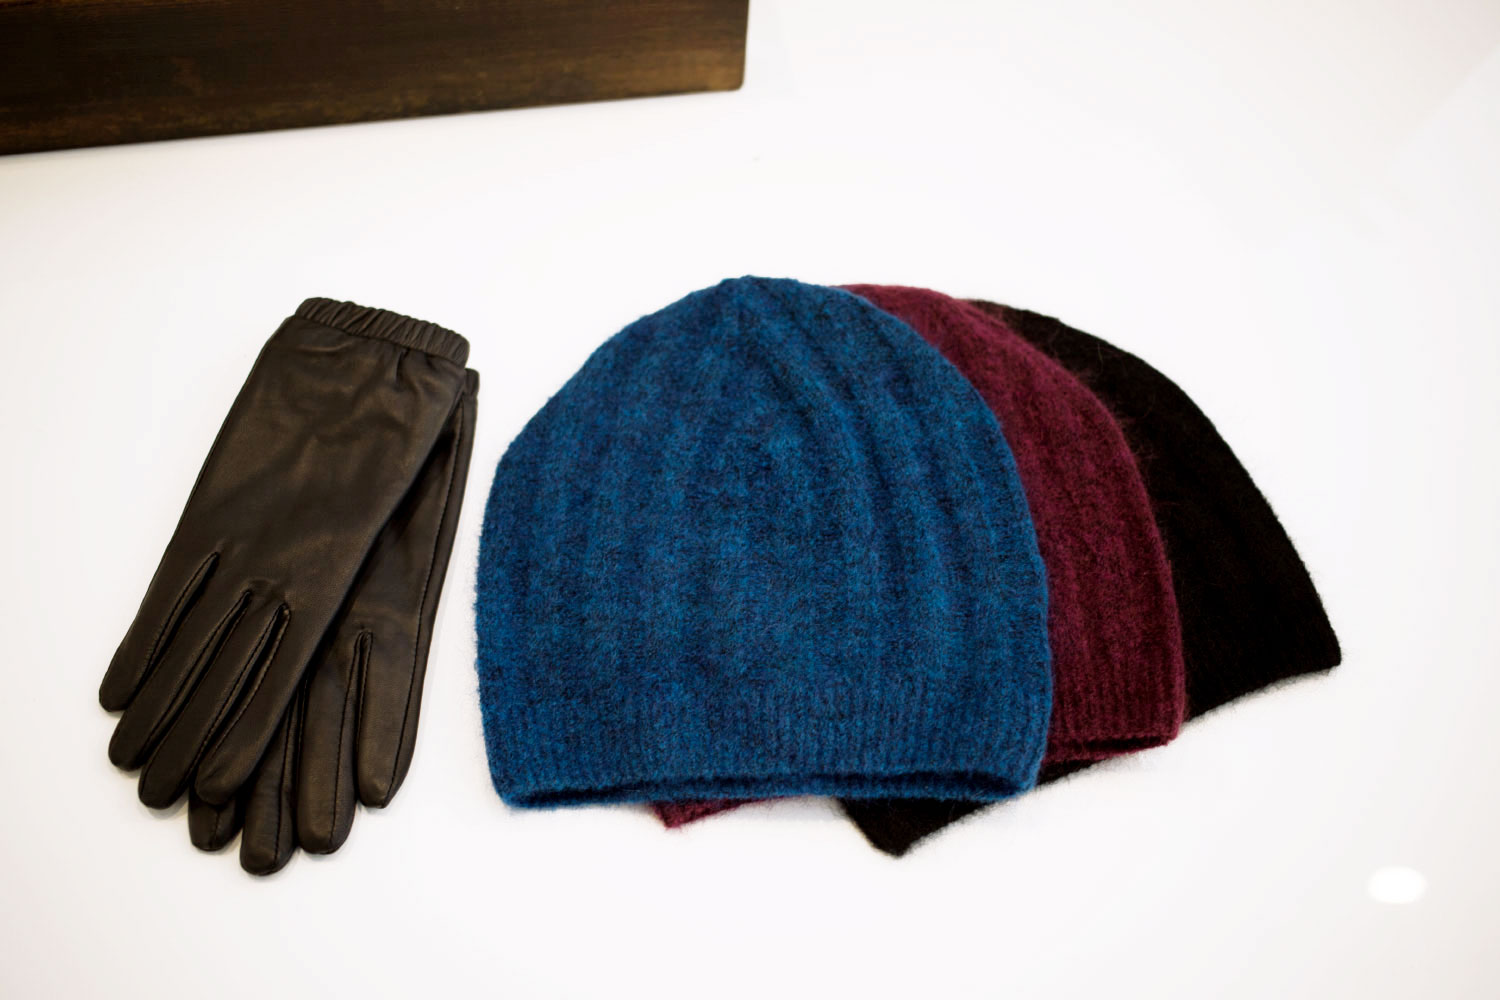 Above:  Just Female Stall Leather Glove s and Glow Beanies in Blue, Aubergine and Black.